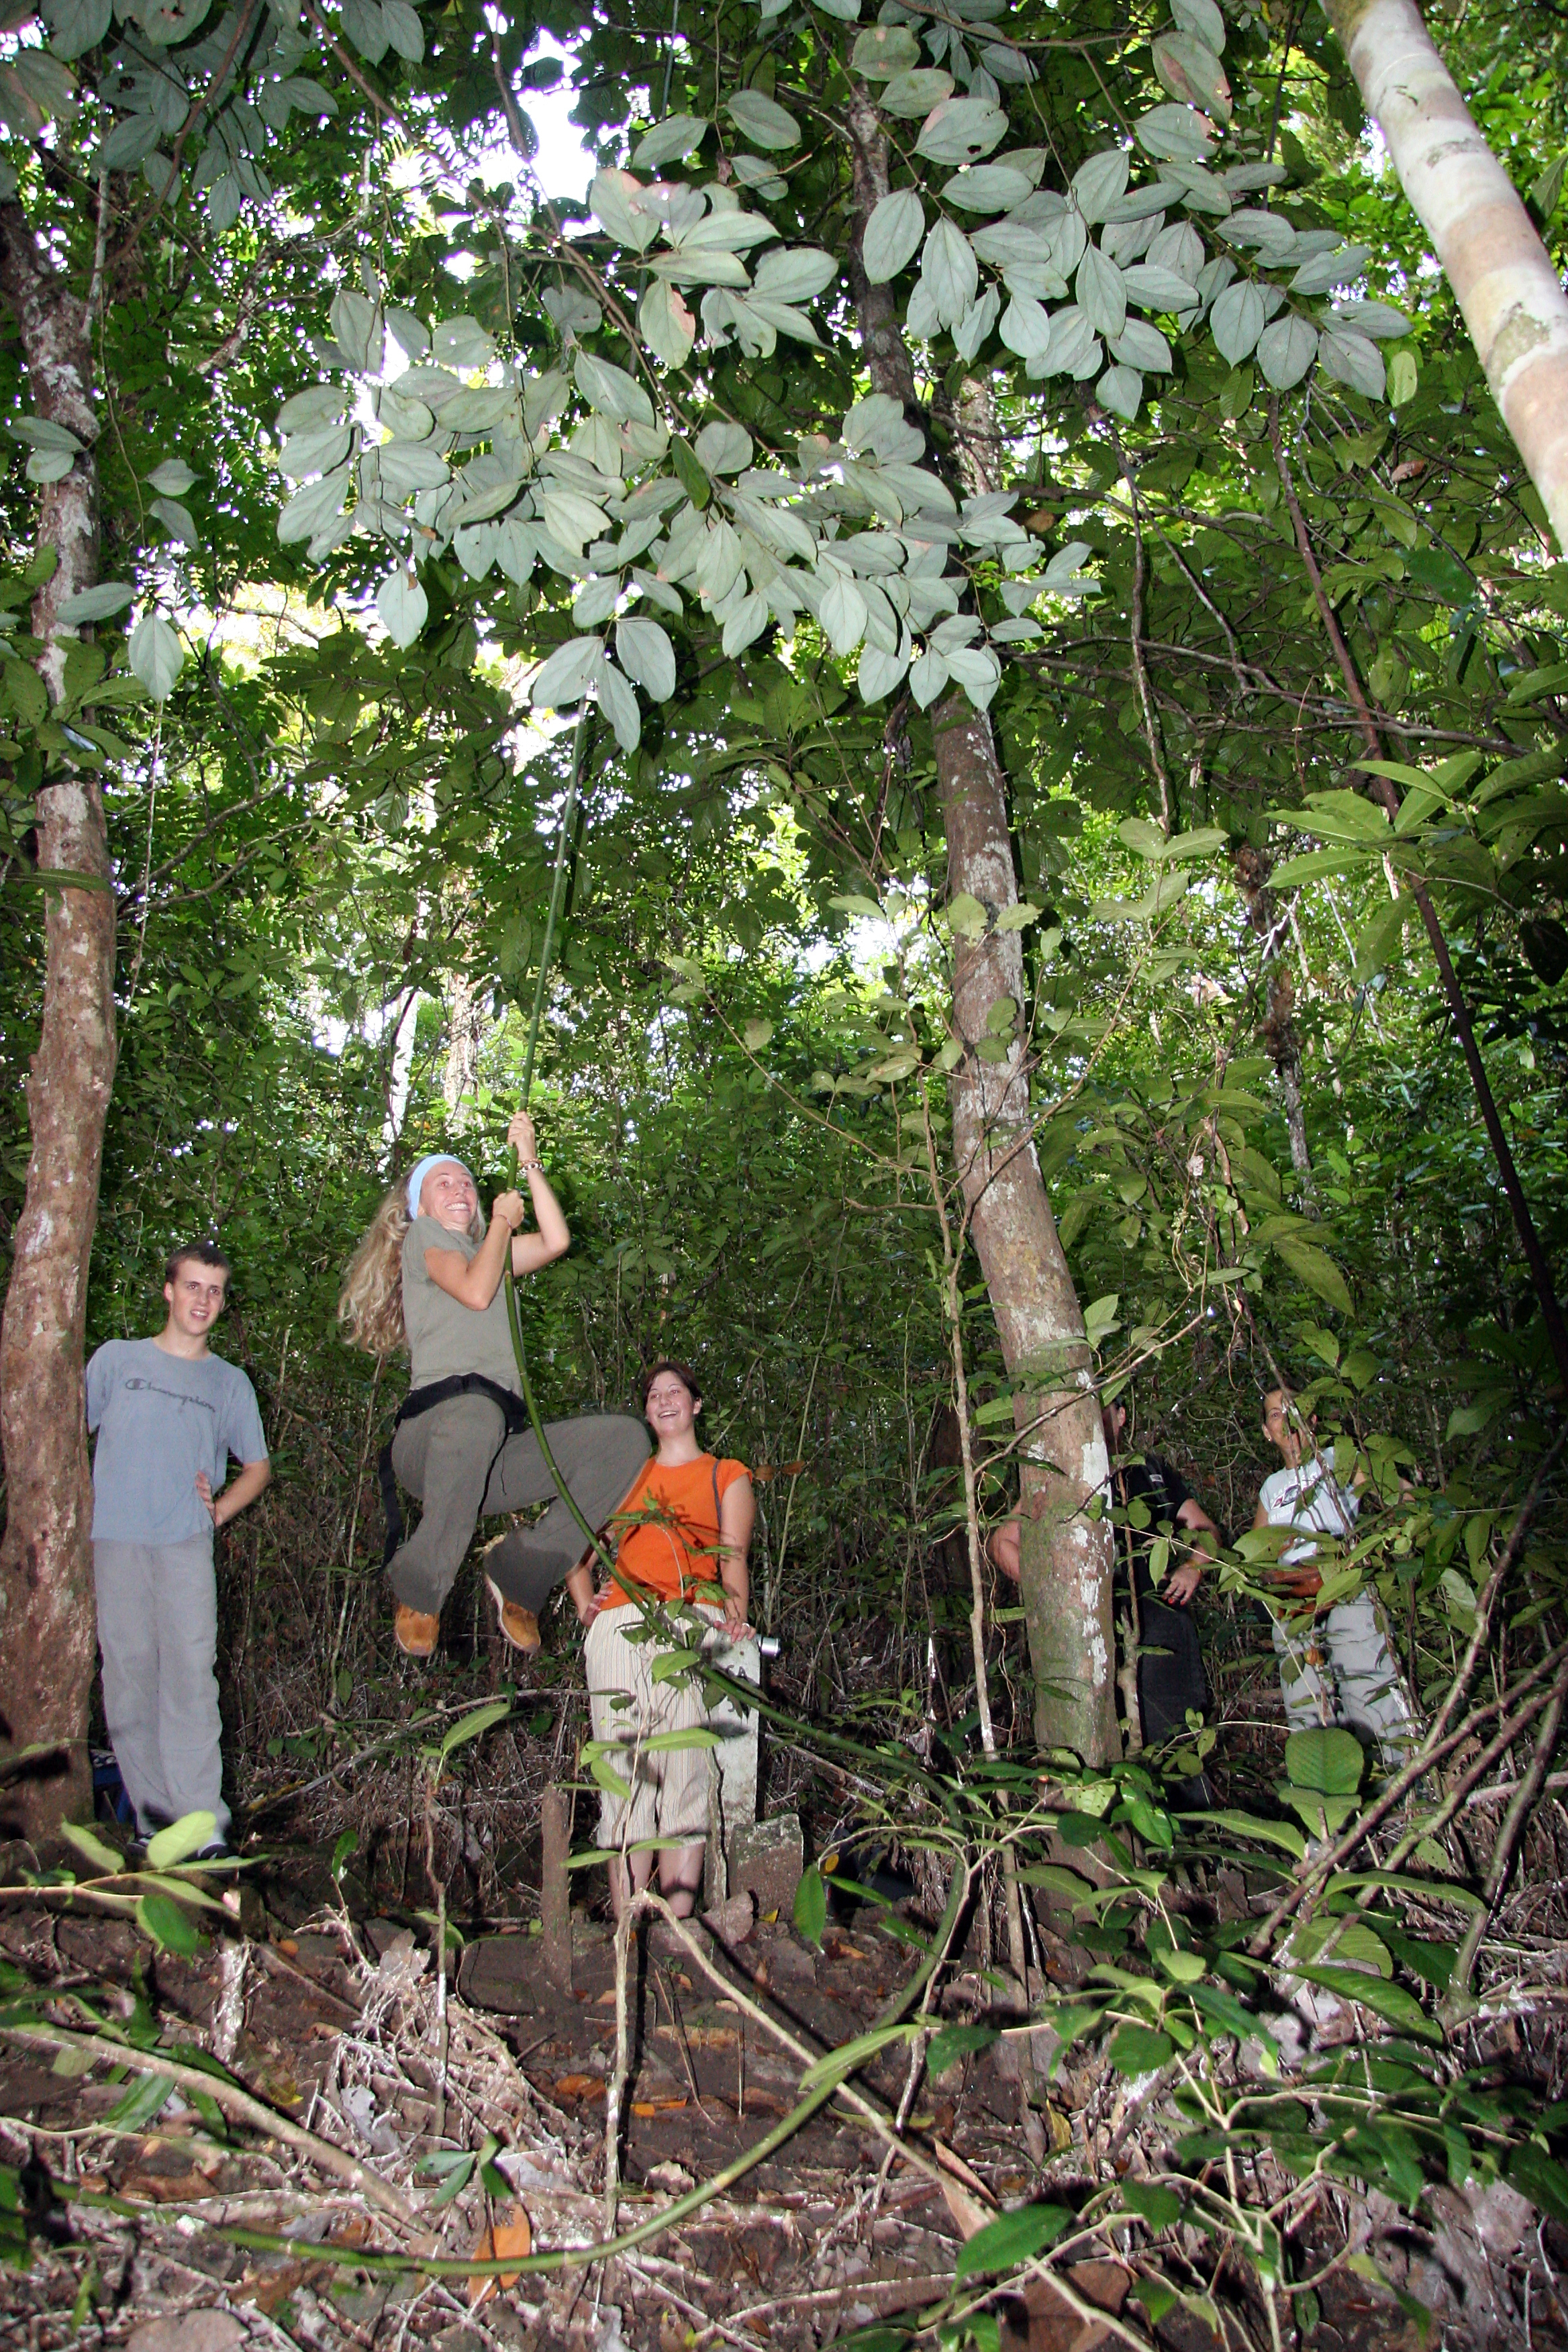 Penanjung nature reserve. Playing Tarzan on the vines, Java Pangandaran Indonesia 1.jpg - Indonesia Java Pangandaran. Penanjung nature reserve. Playing Tarzan on the vines